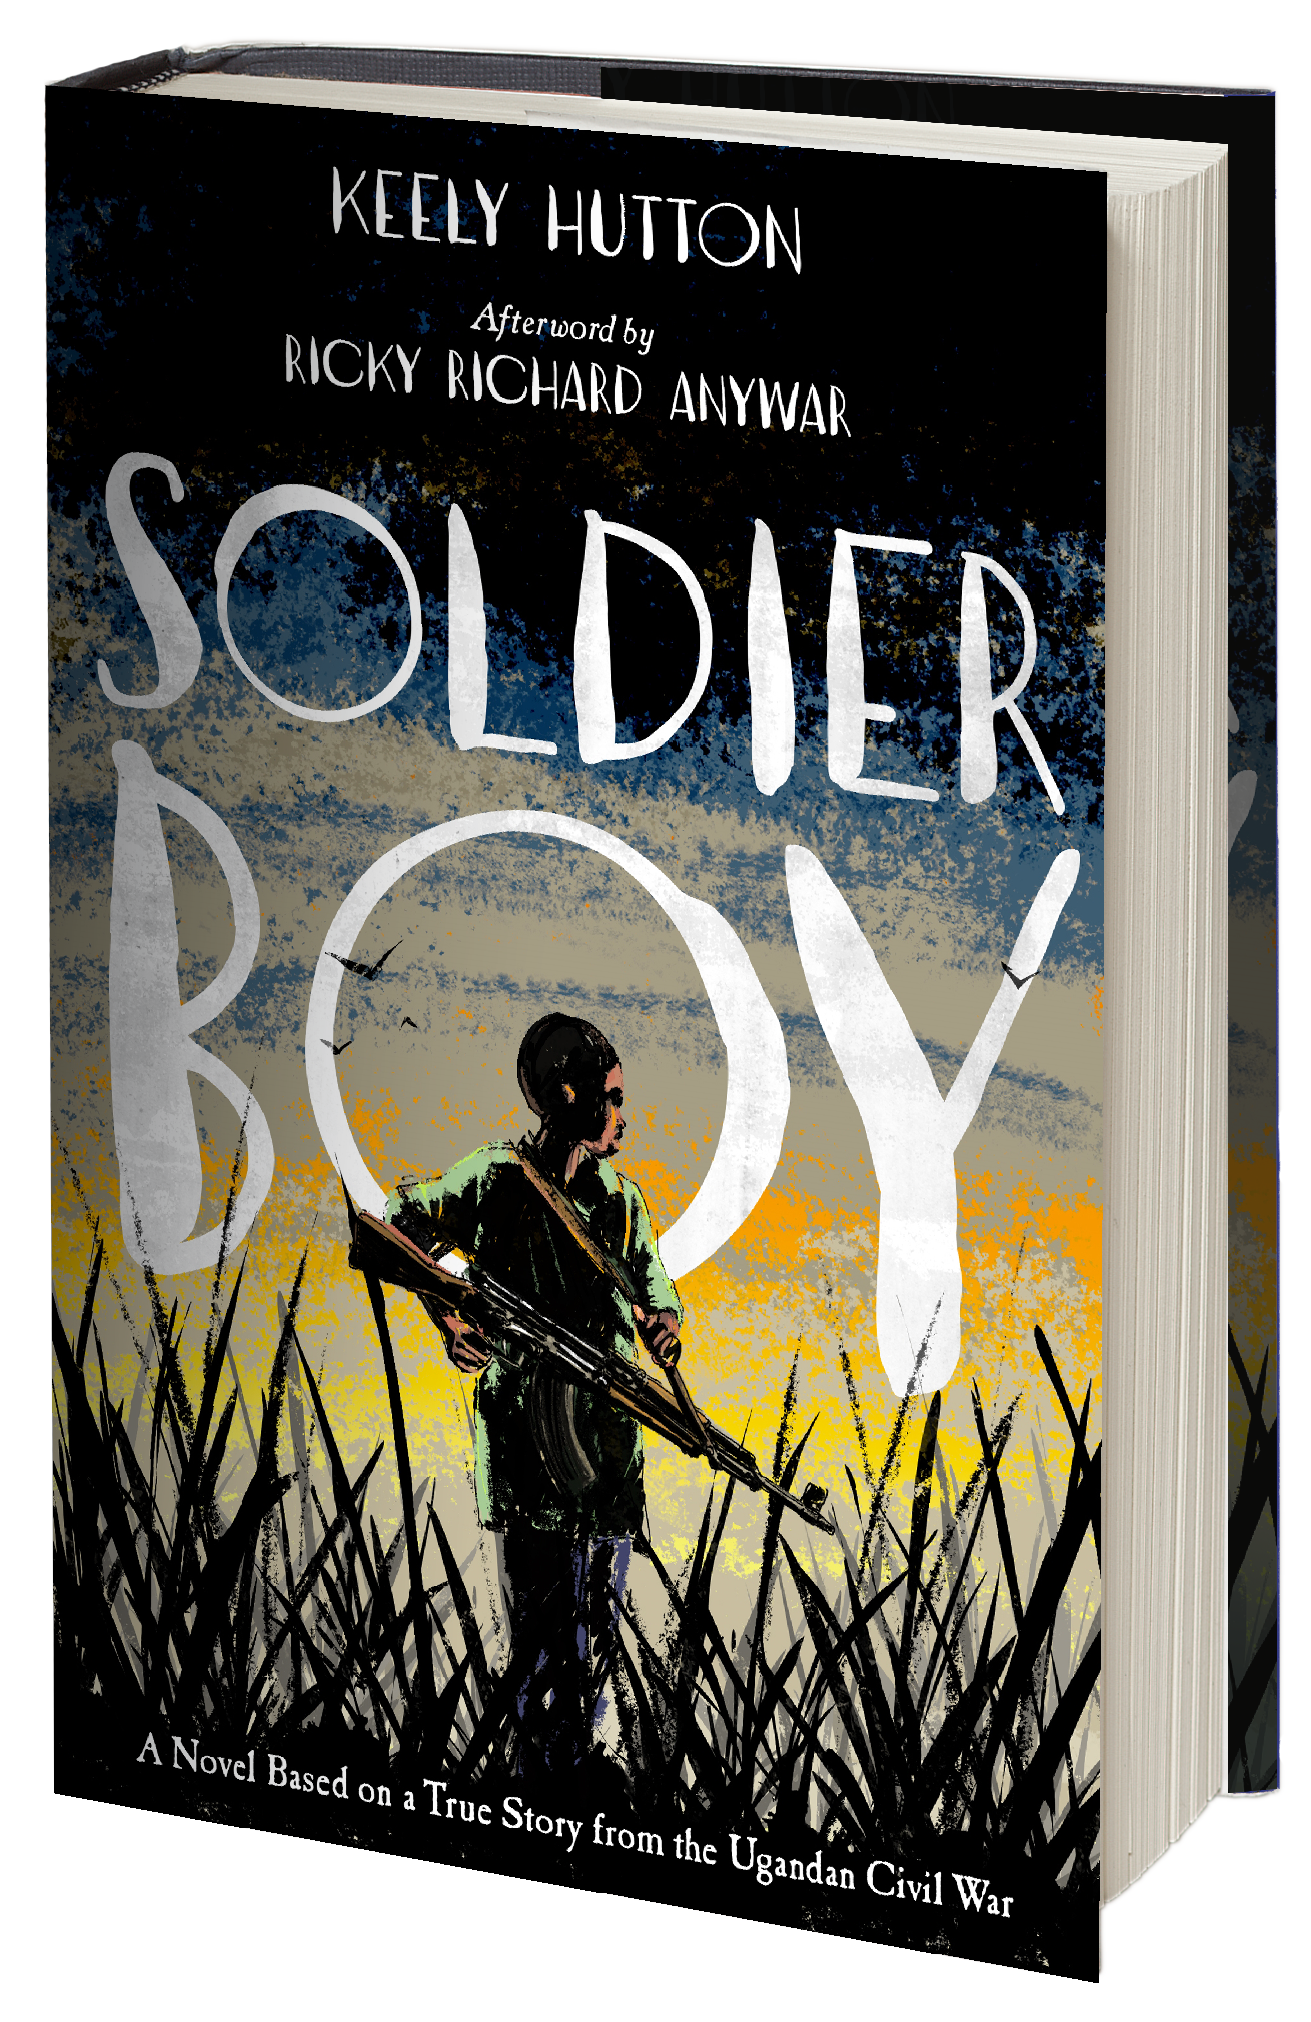 Soldier-Boy-COver-2